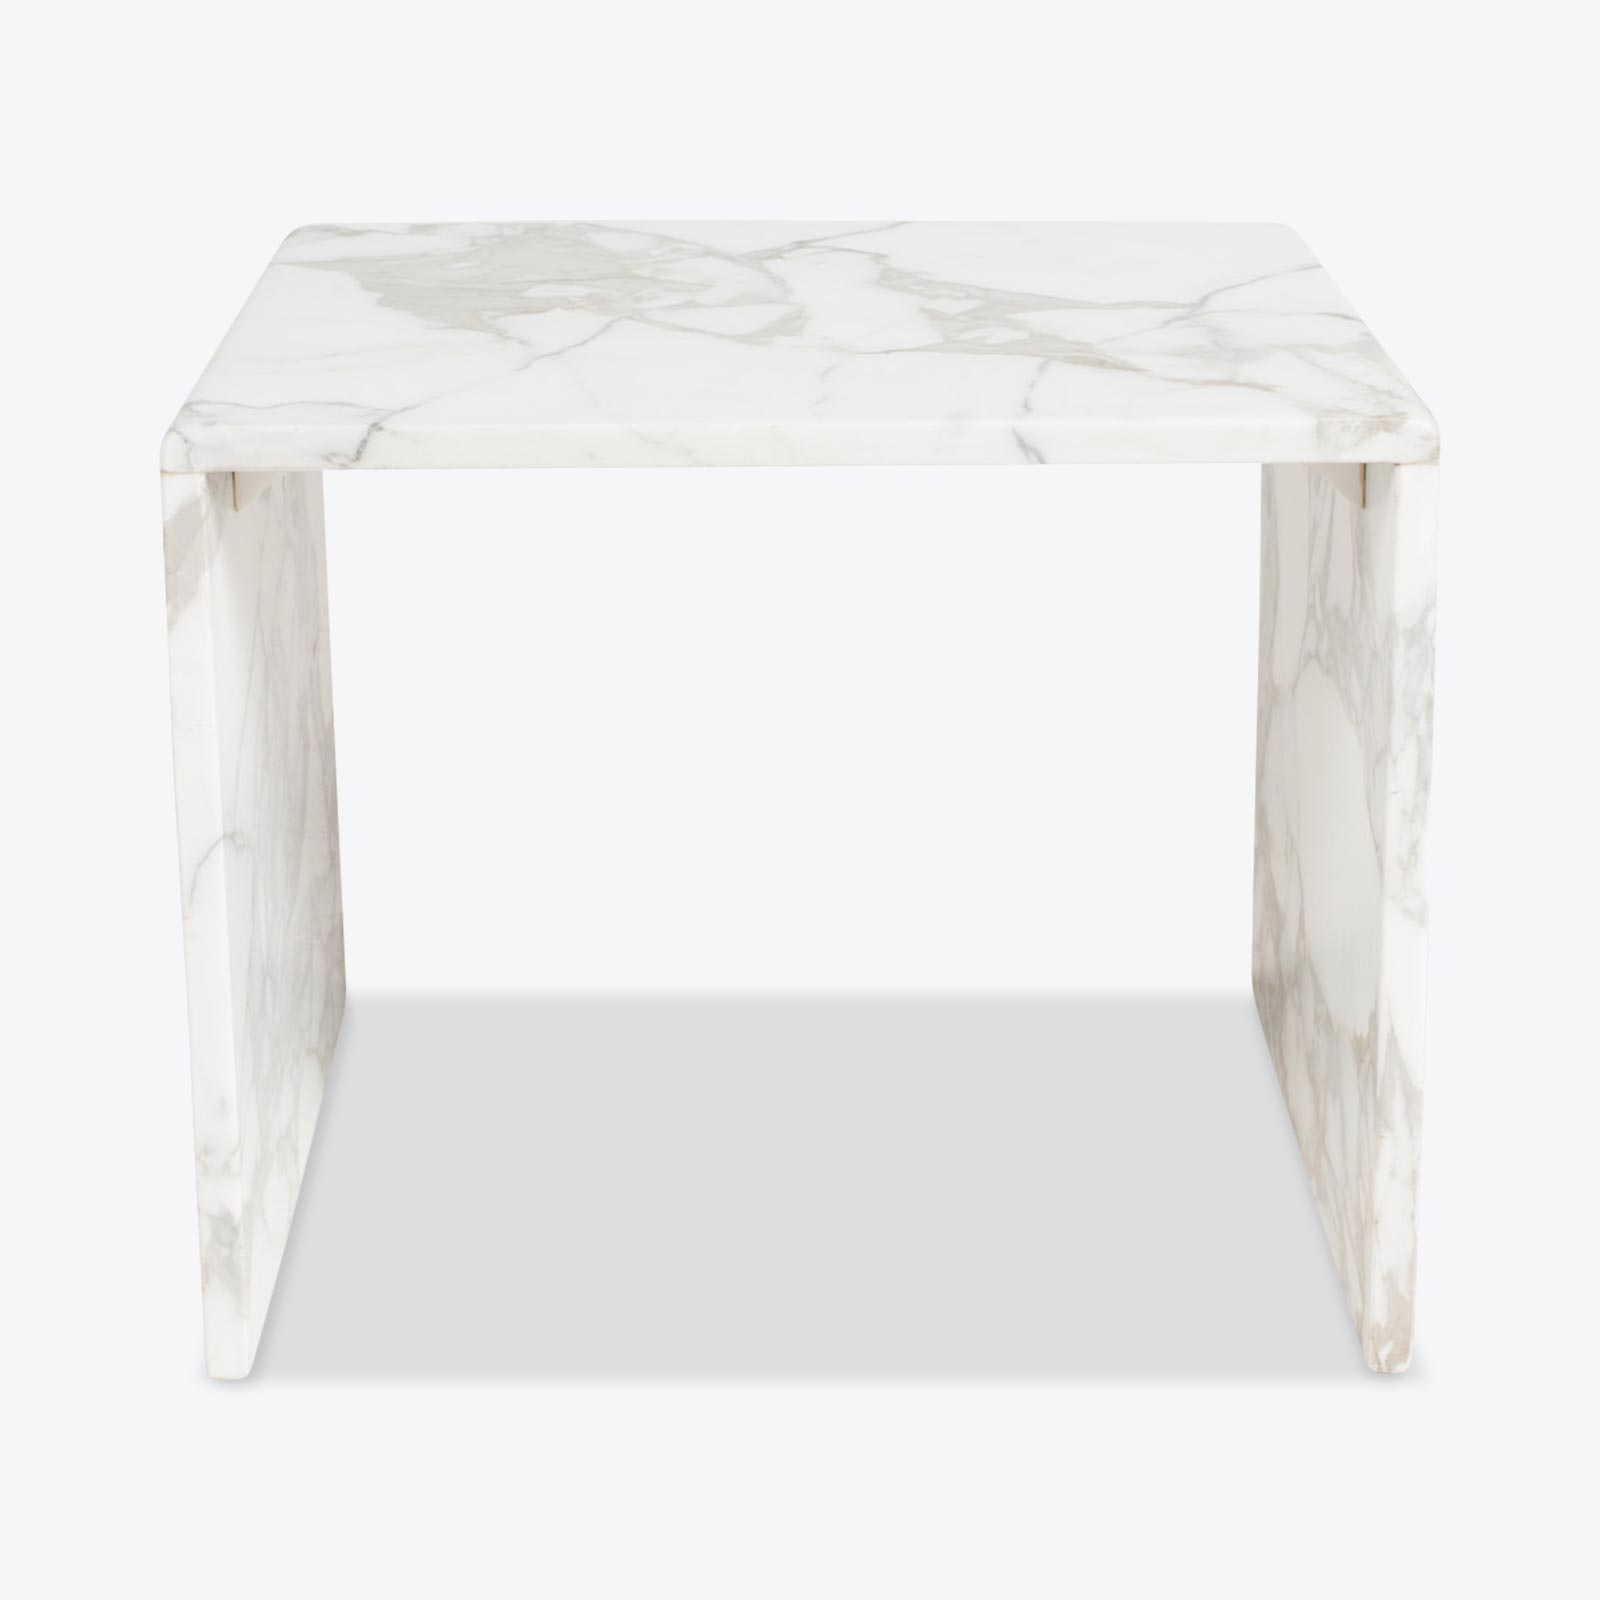 Side Table In Calacatta Marble 1960s Netherlands 00.jpg